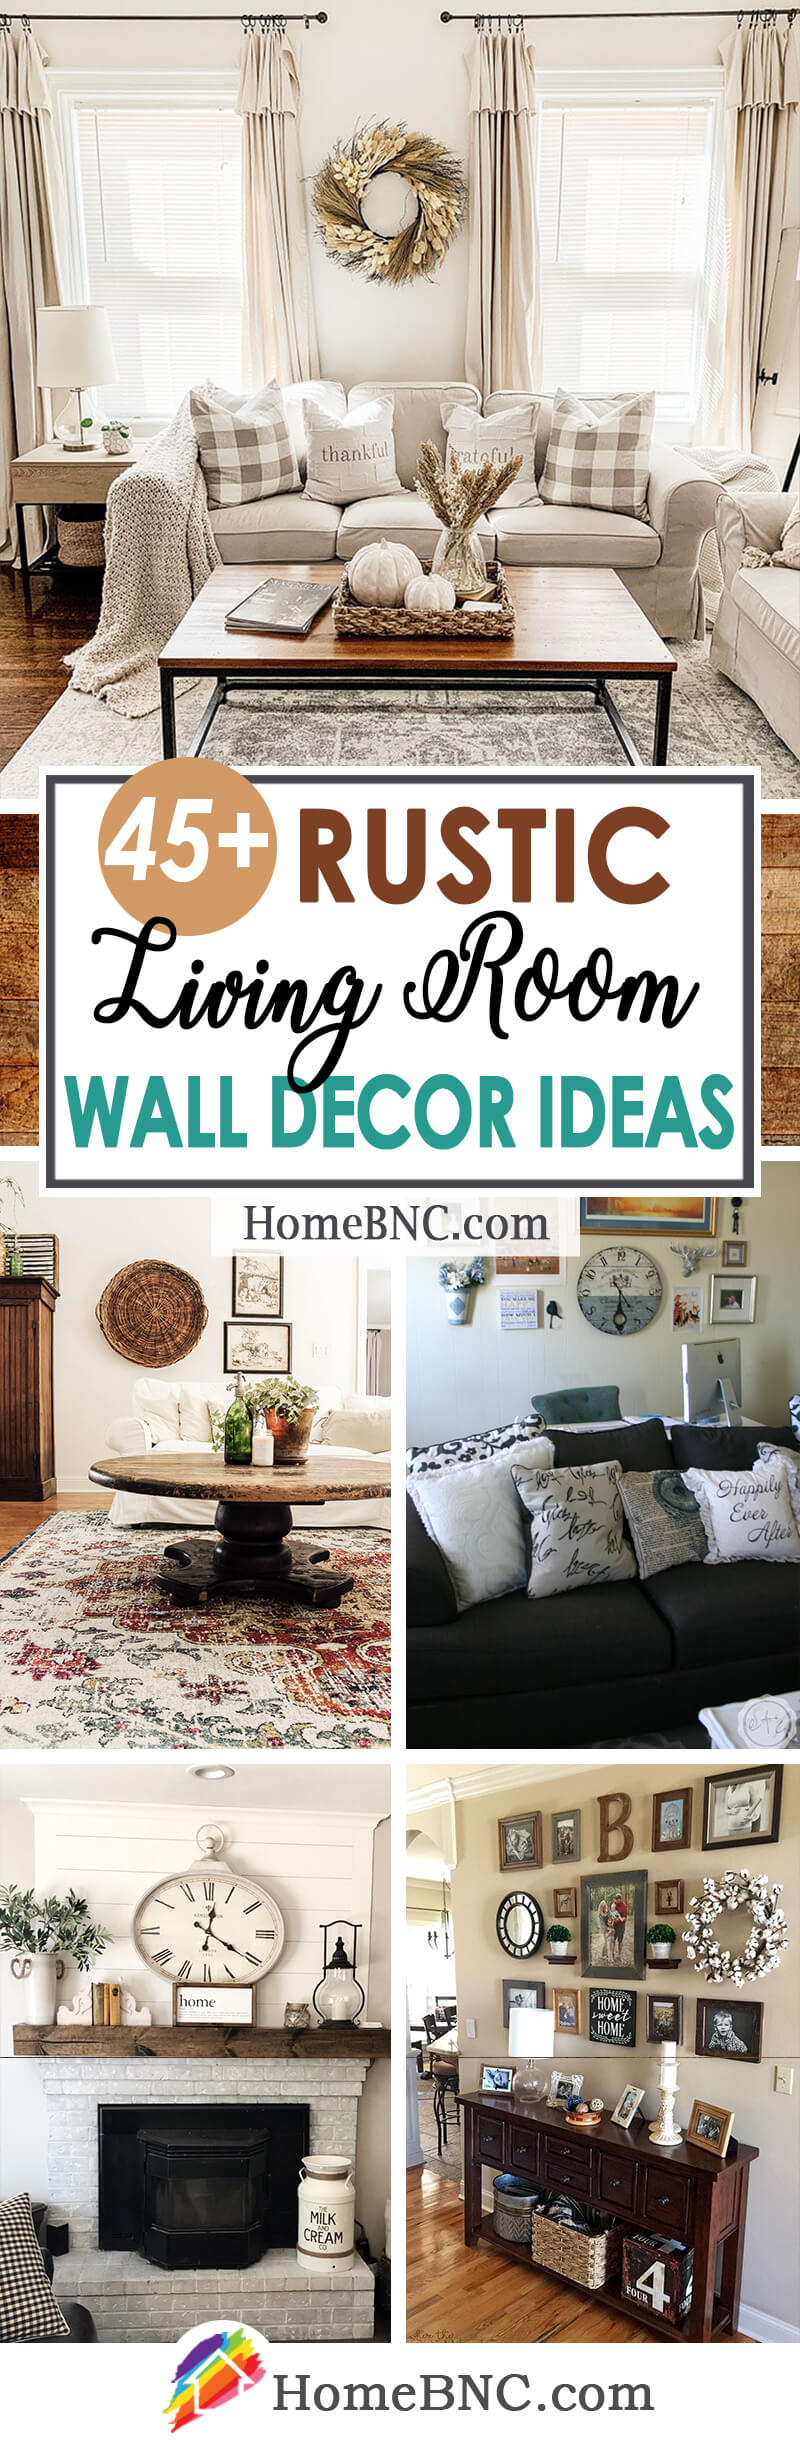 20+ Best Rustic Living Room Wall Decor Ideas and Designs for 20